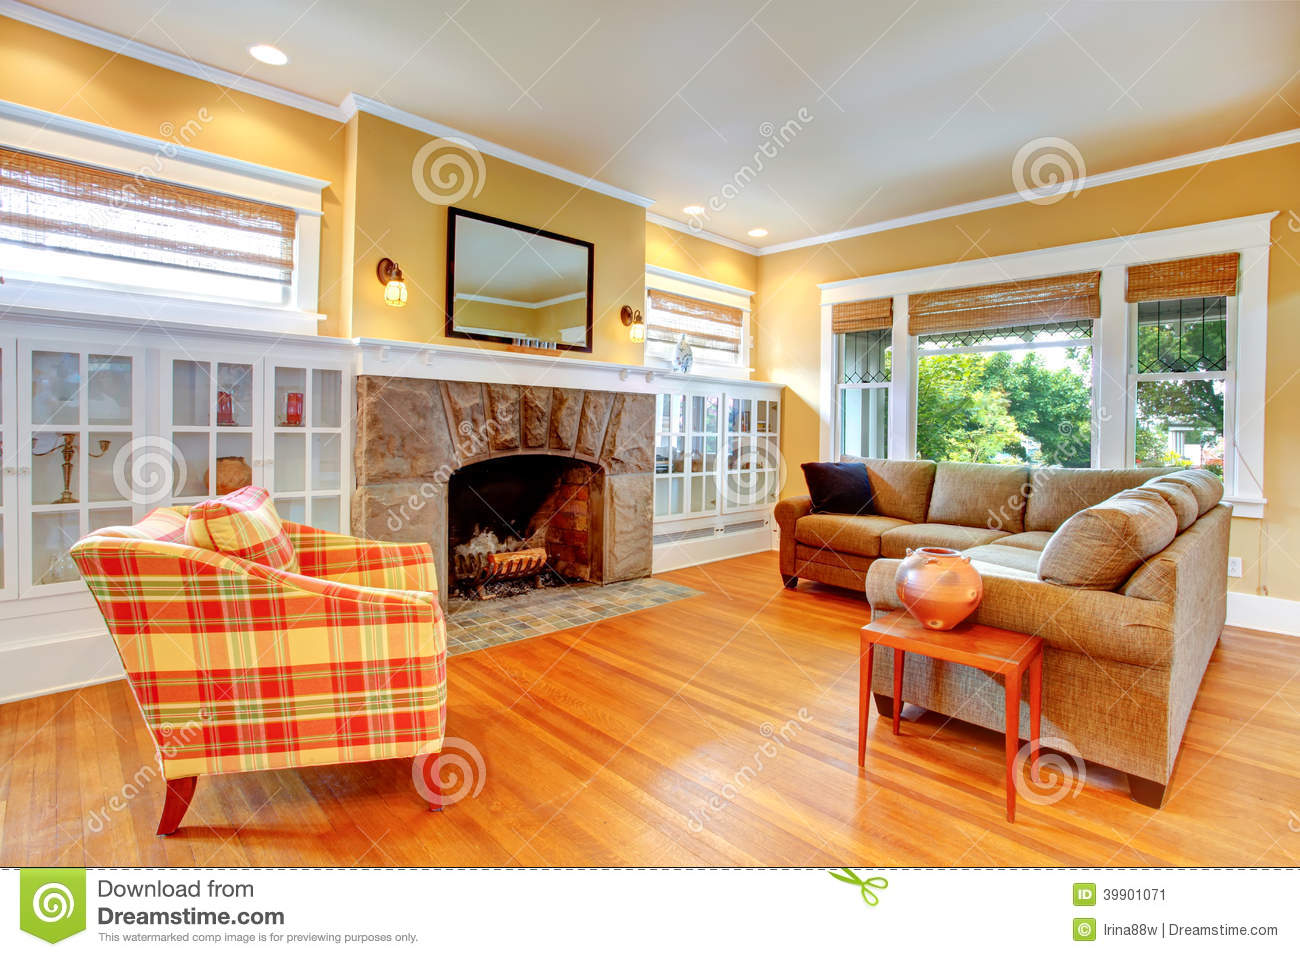 house interior yellow living room with fireplace stock image